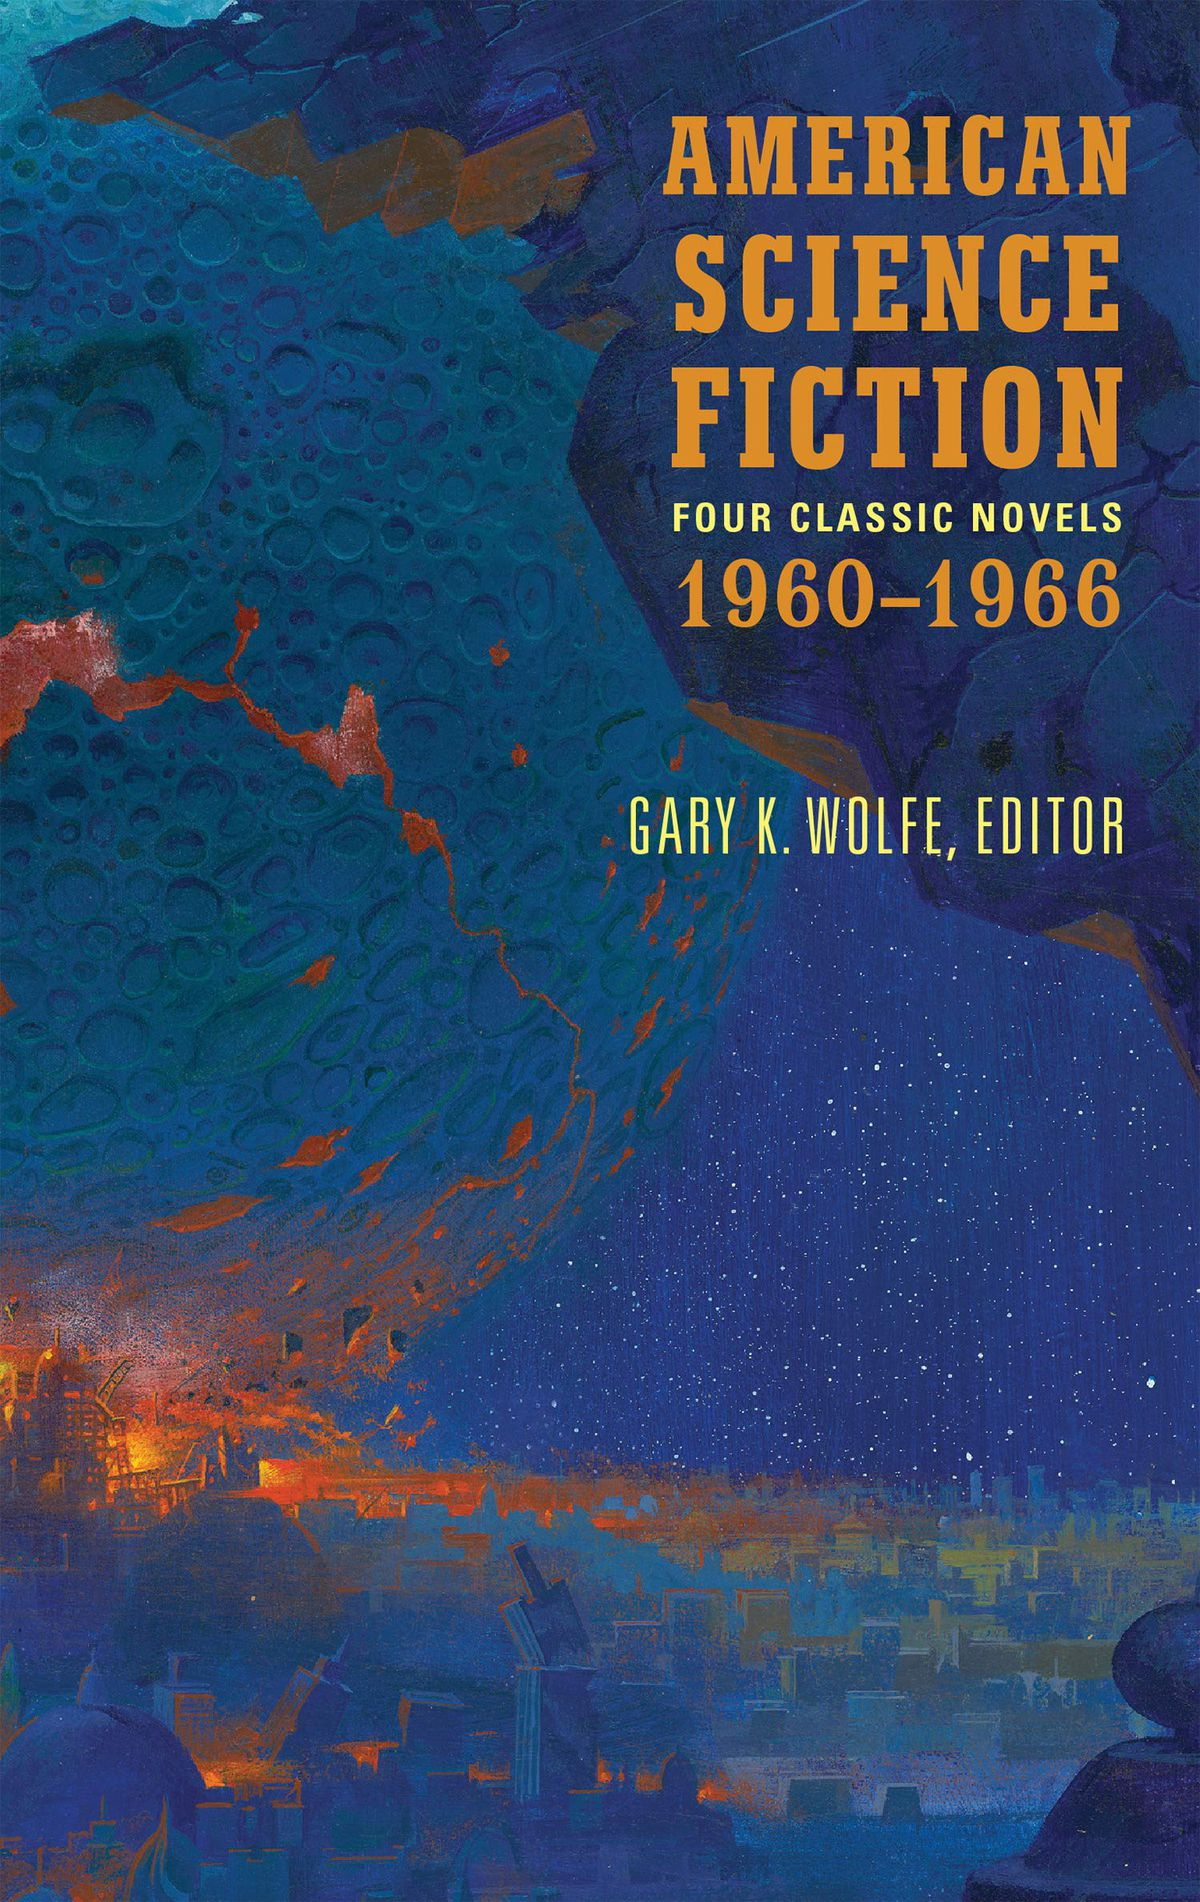 Russell Letson Reviews American Science Fiction: Eight Classic Novels of the 1960s, Edited by Gary K. Wolfe